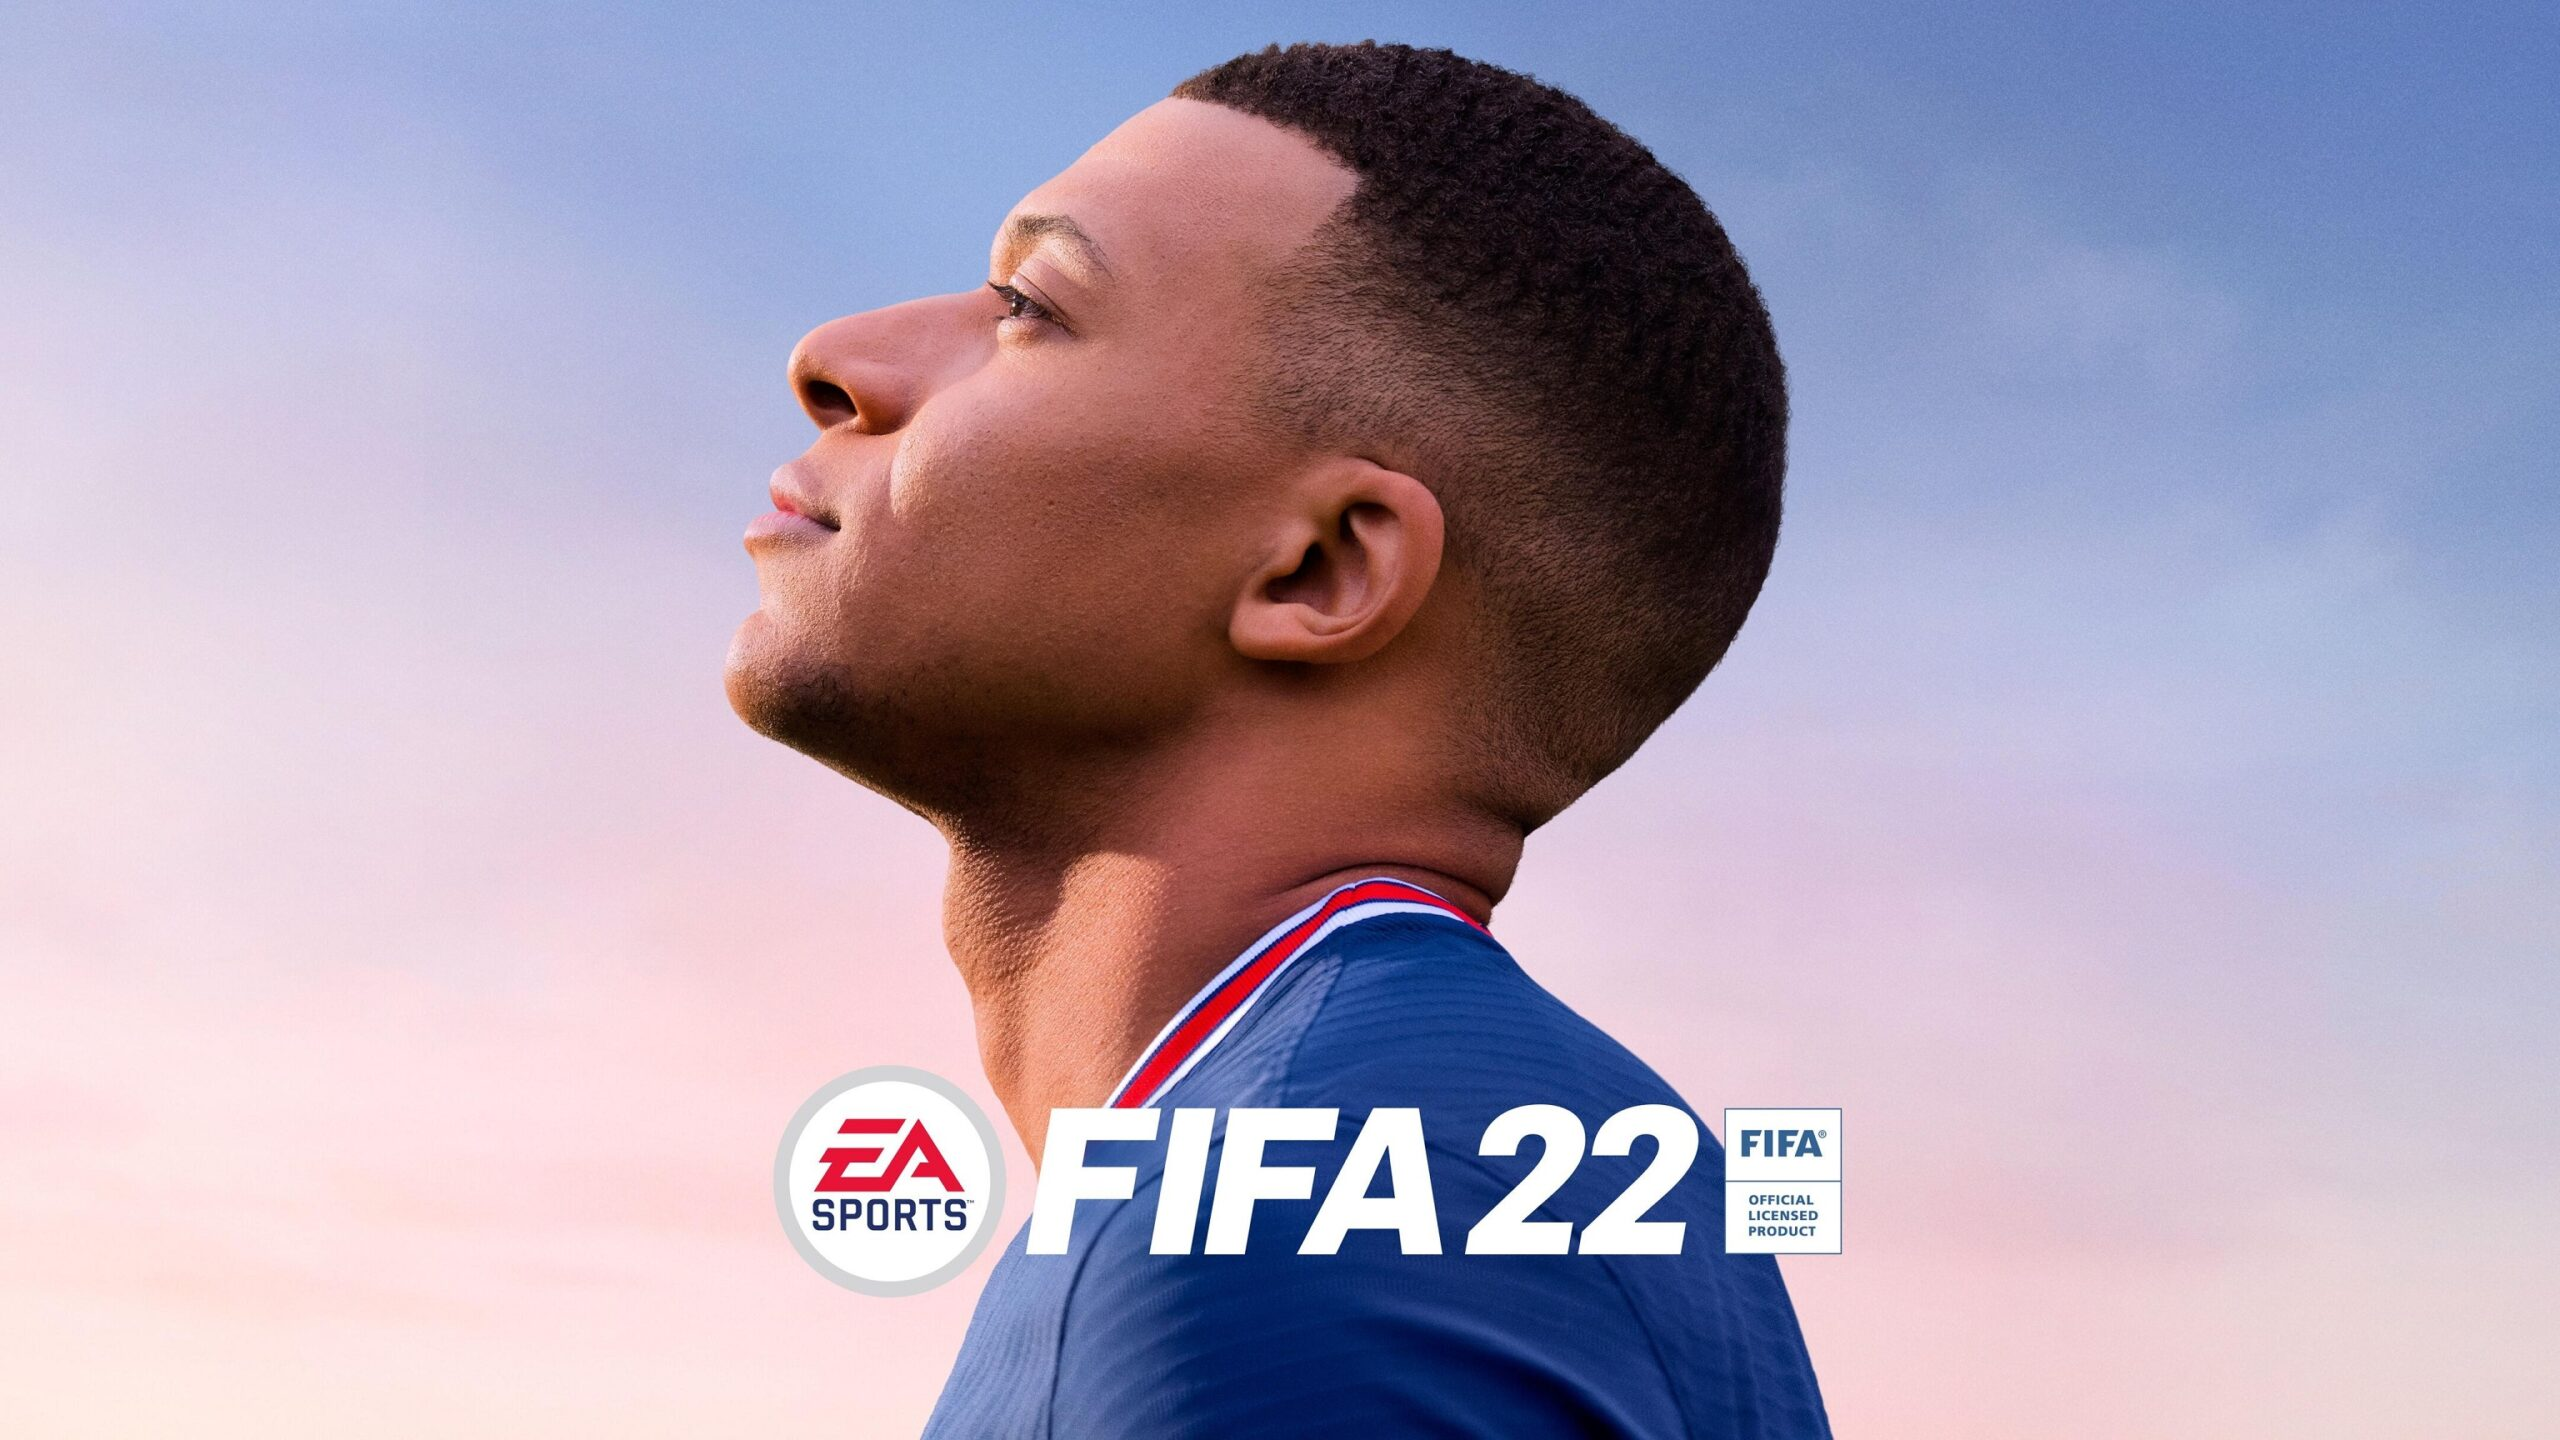 FIFA 22 (PS5) Review: The Most Realistic FIFA Ever